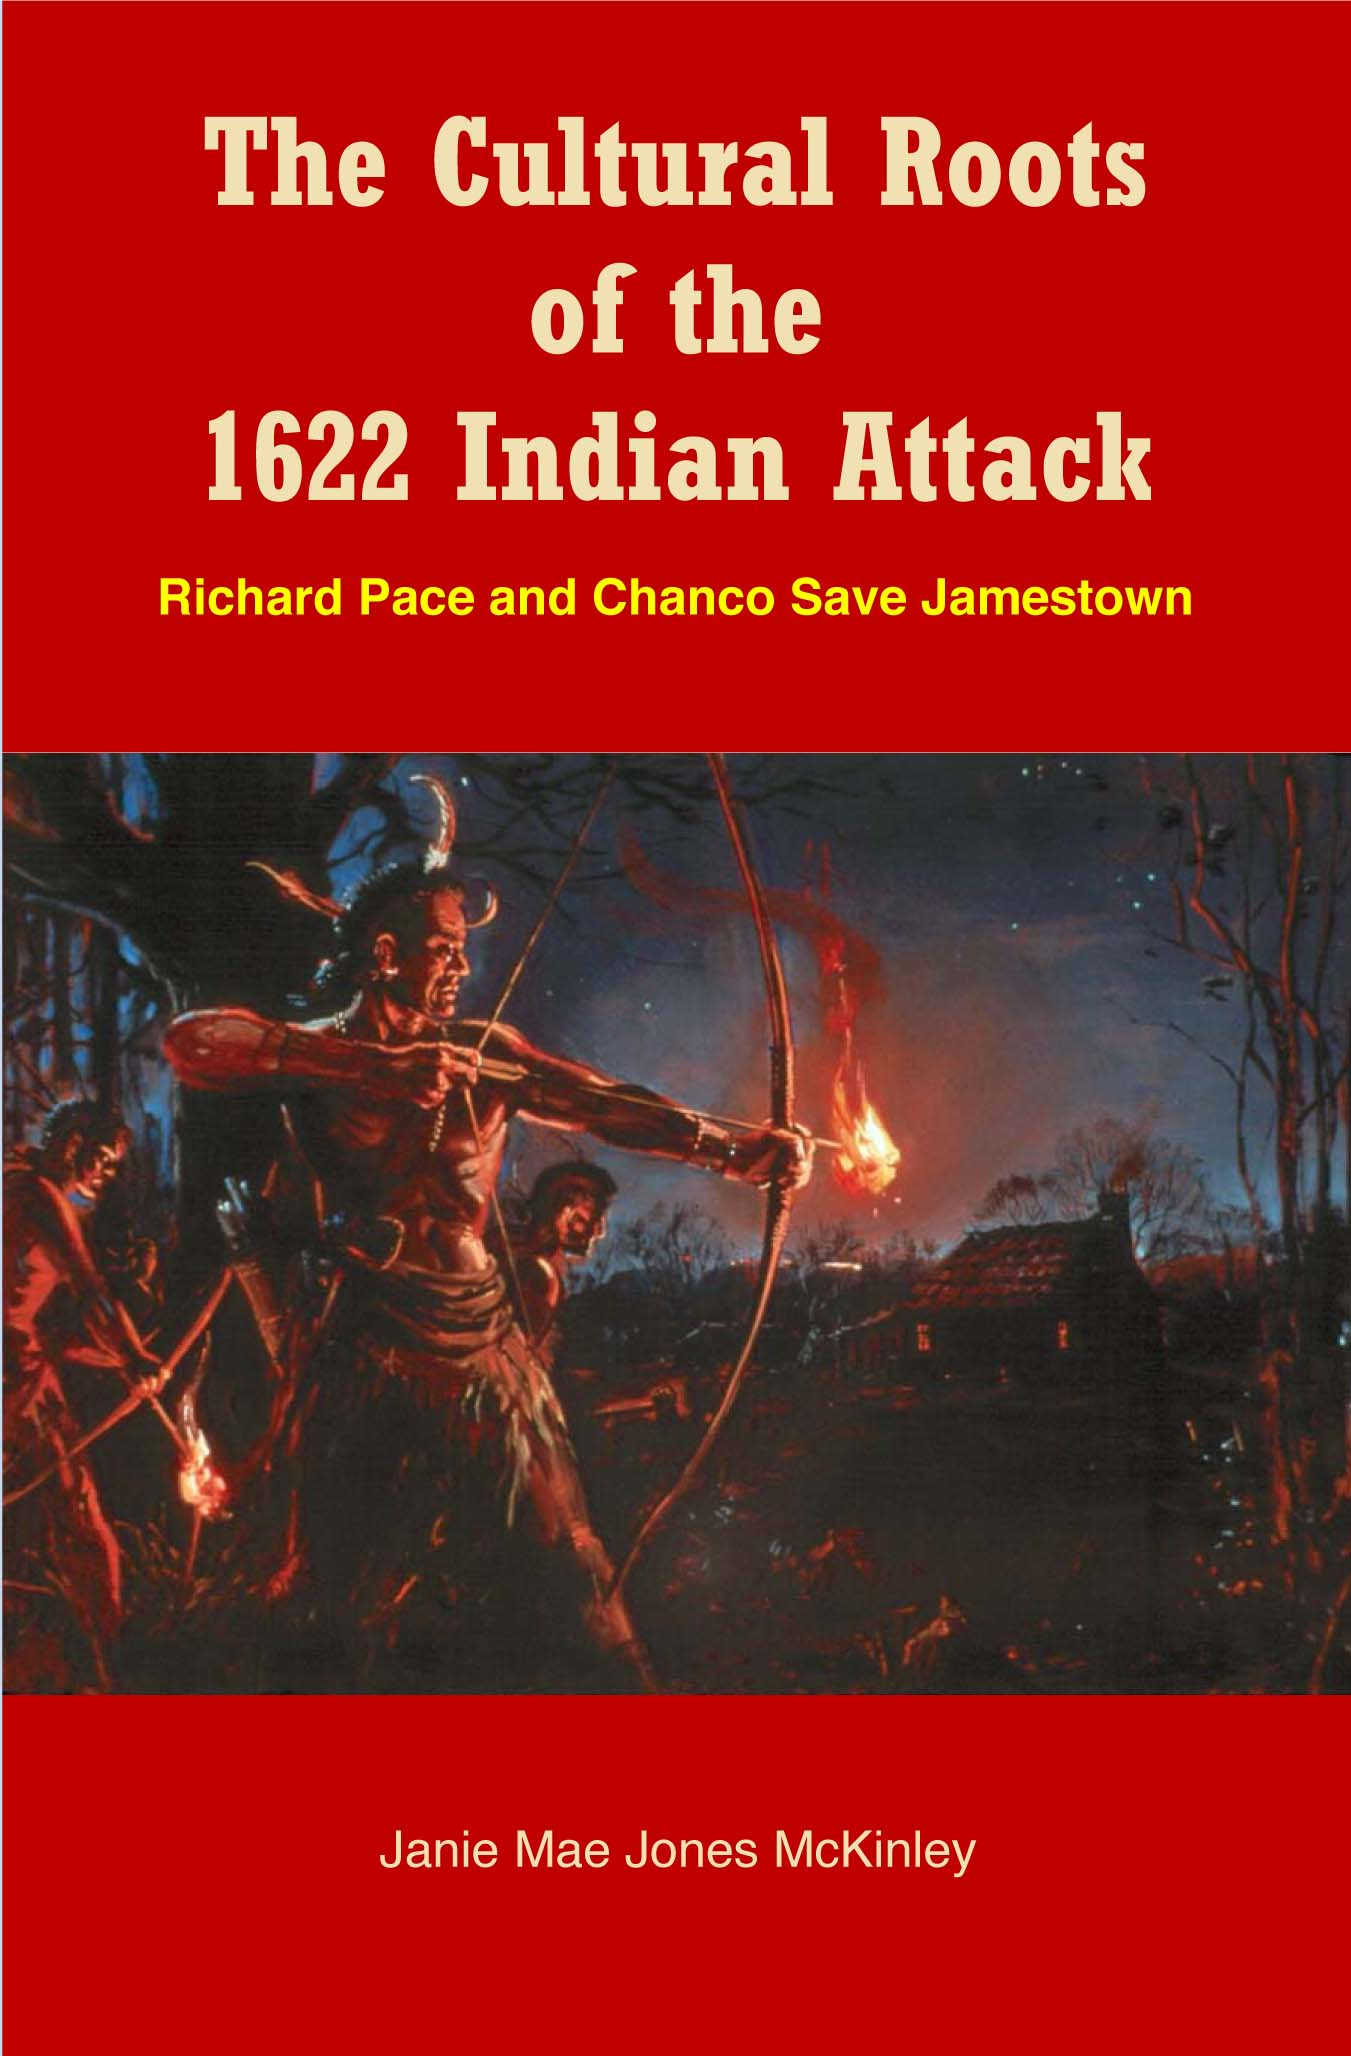 The Cultural Roots of the 1622 Indian Attack